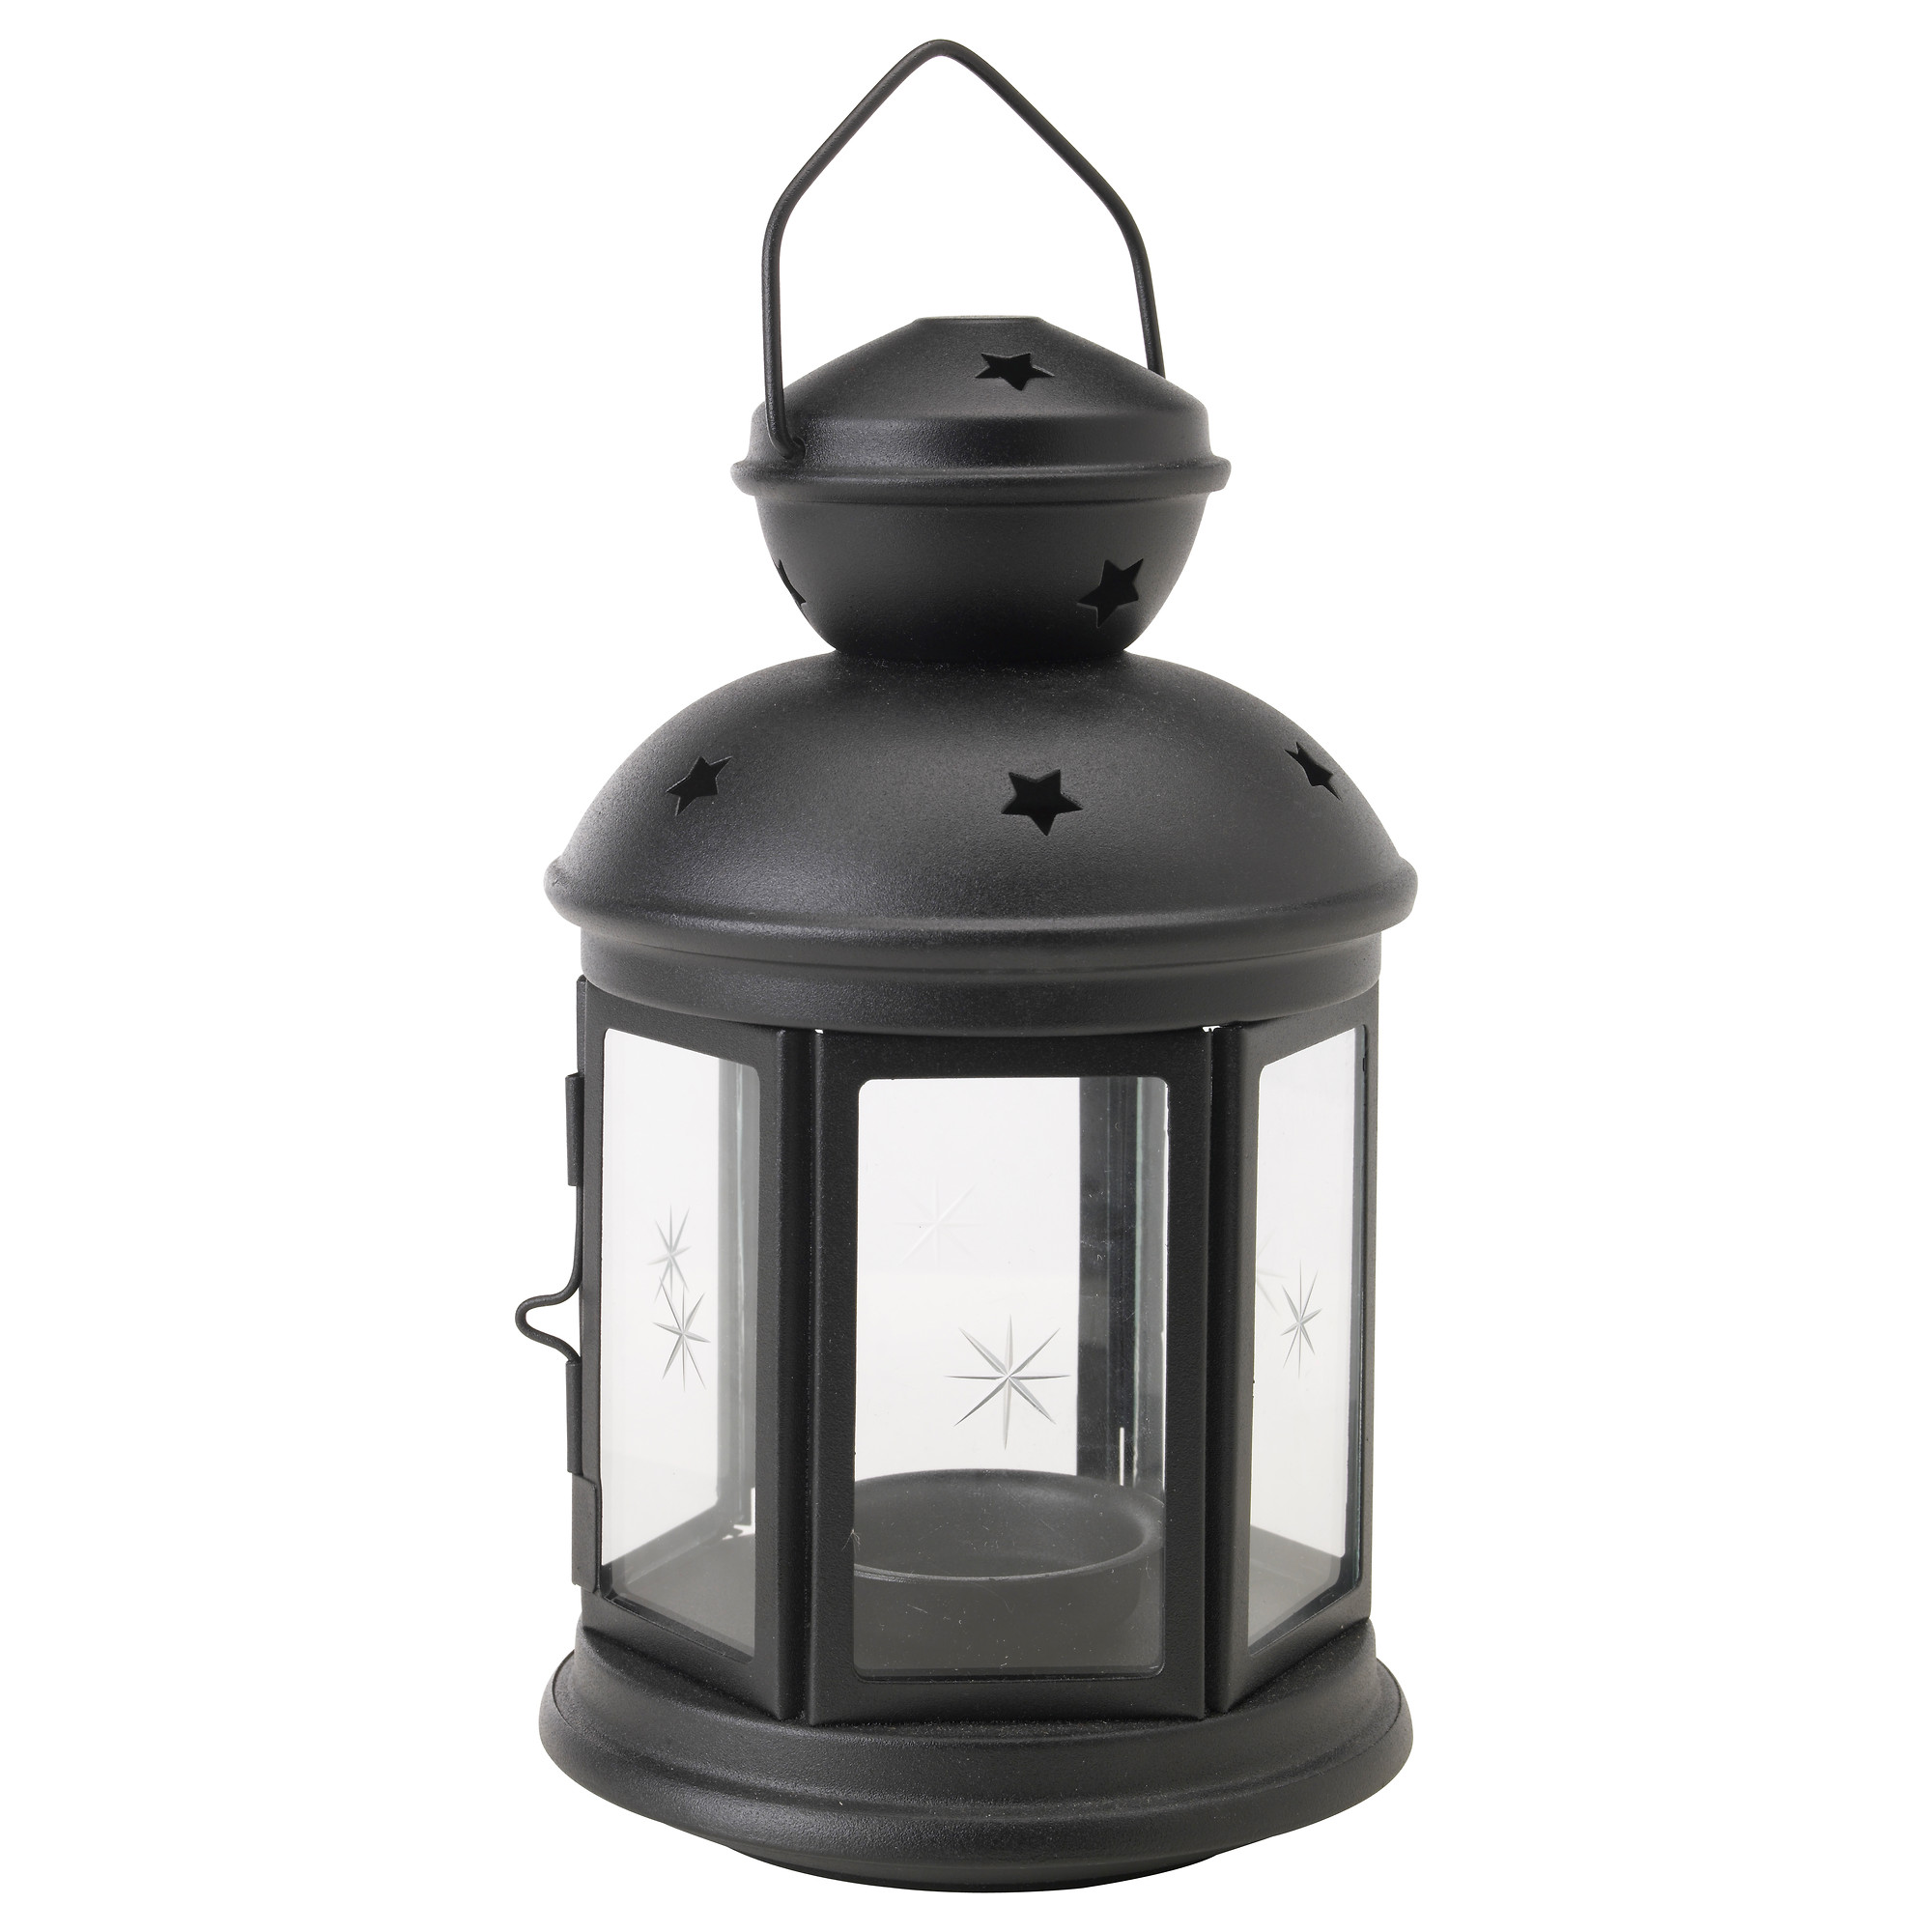 Best candle lanterns for outdoor lighting ideas with outdoor candle lanterns and hanging candle lanterns